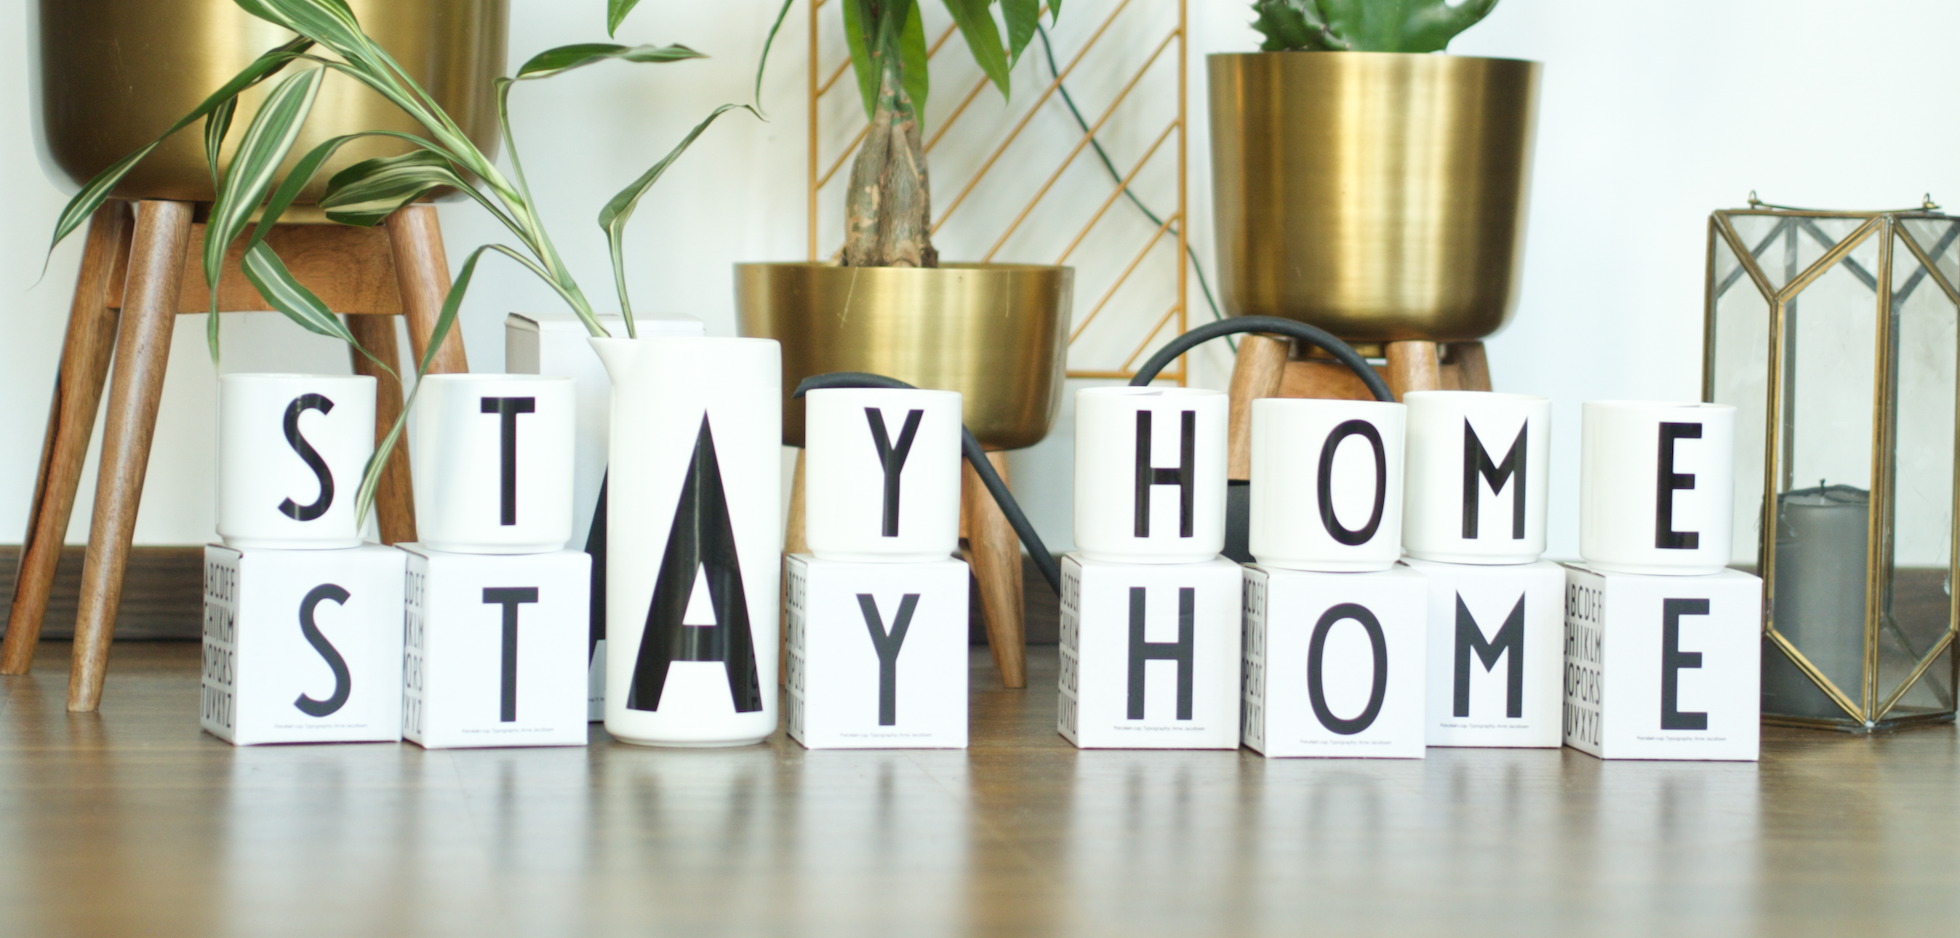 #Stayhome <br /> Designletters on SALE!